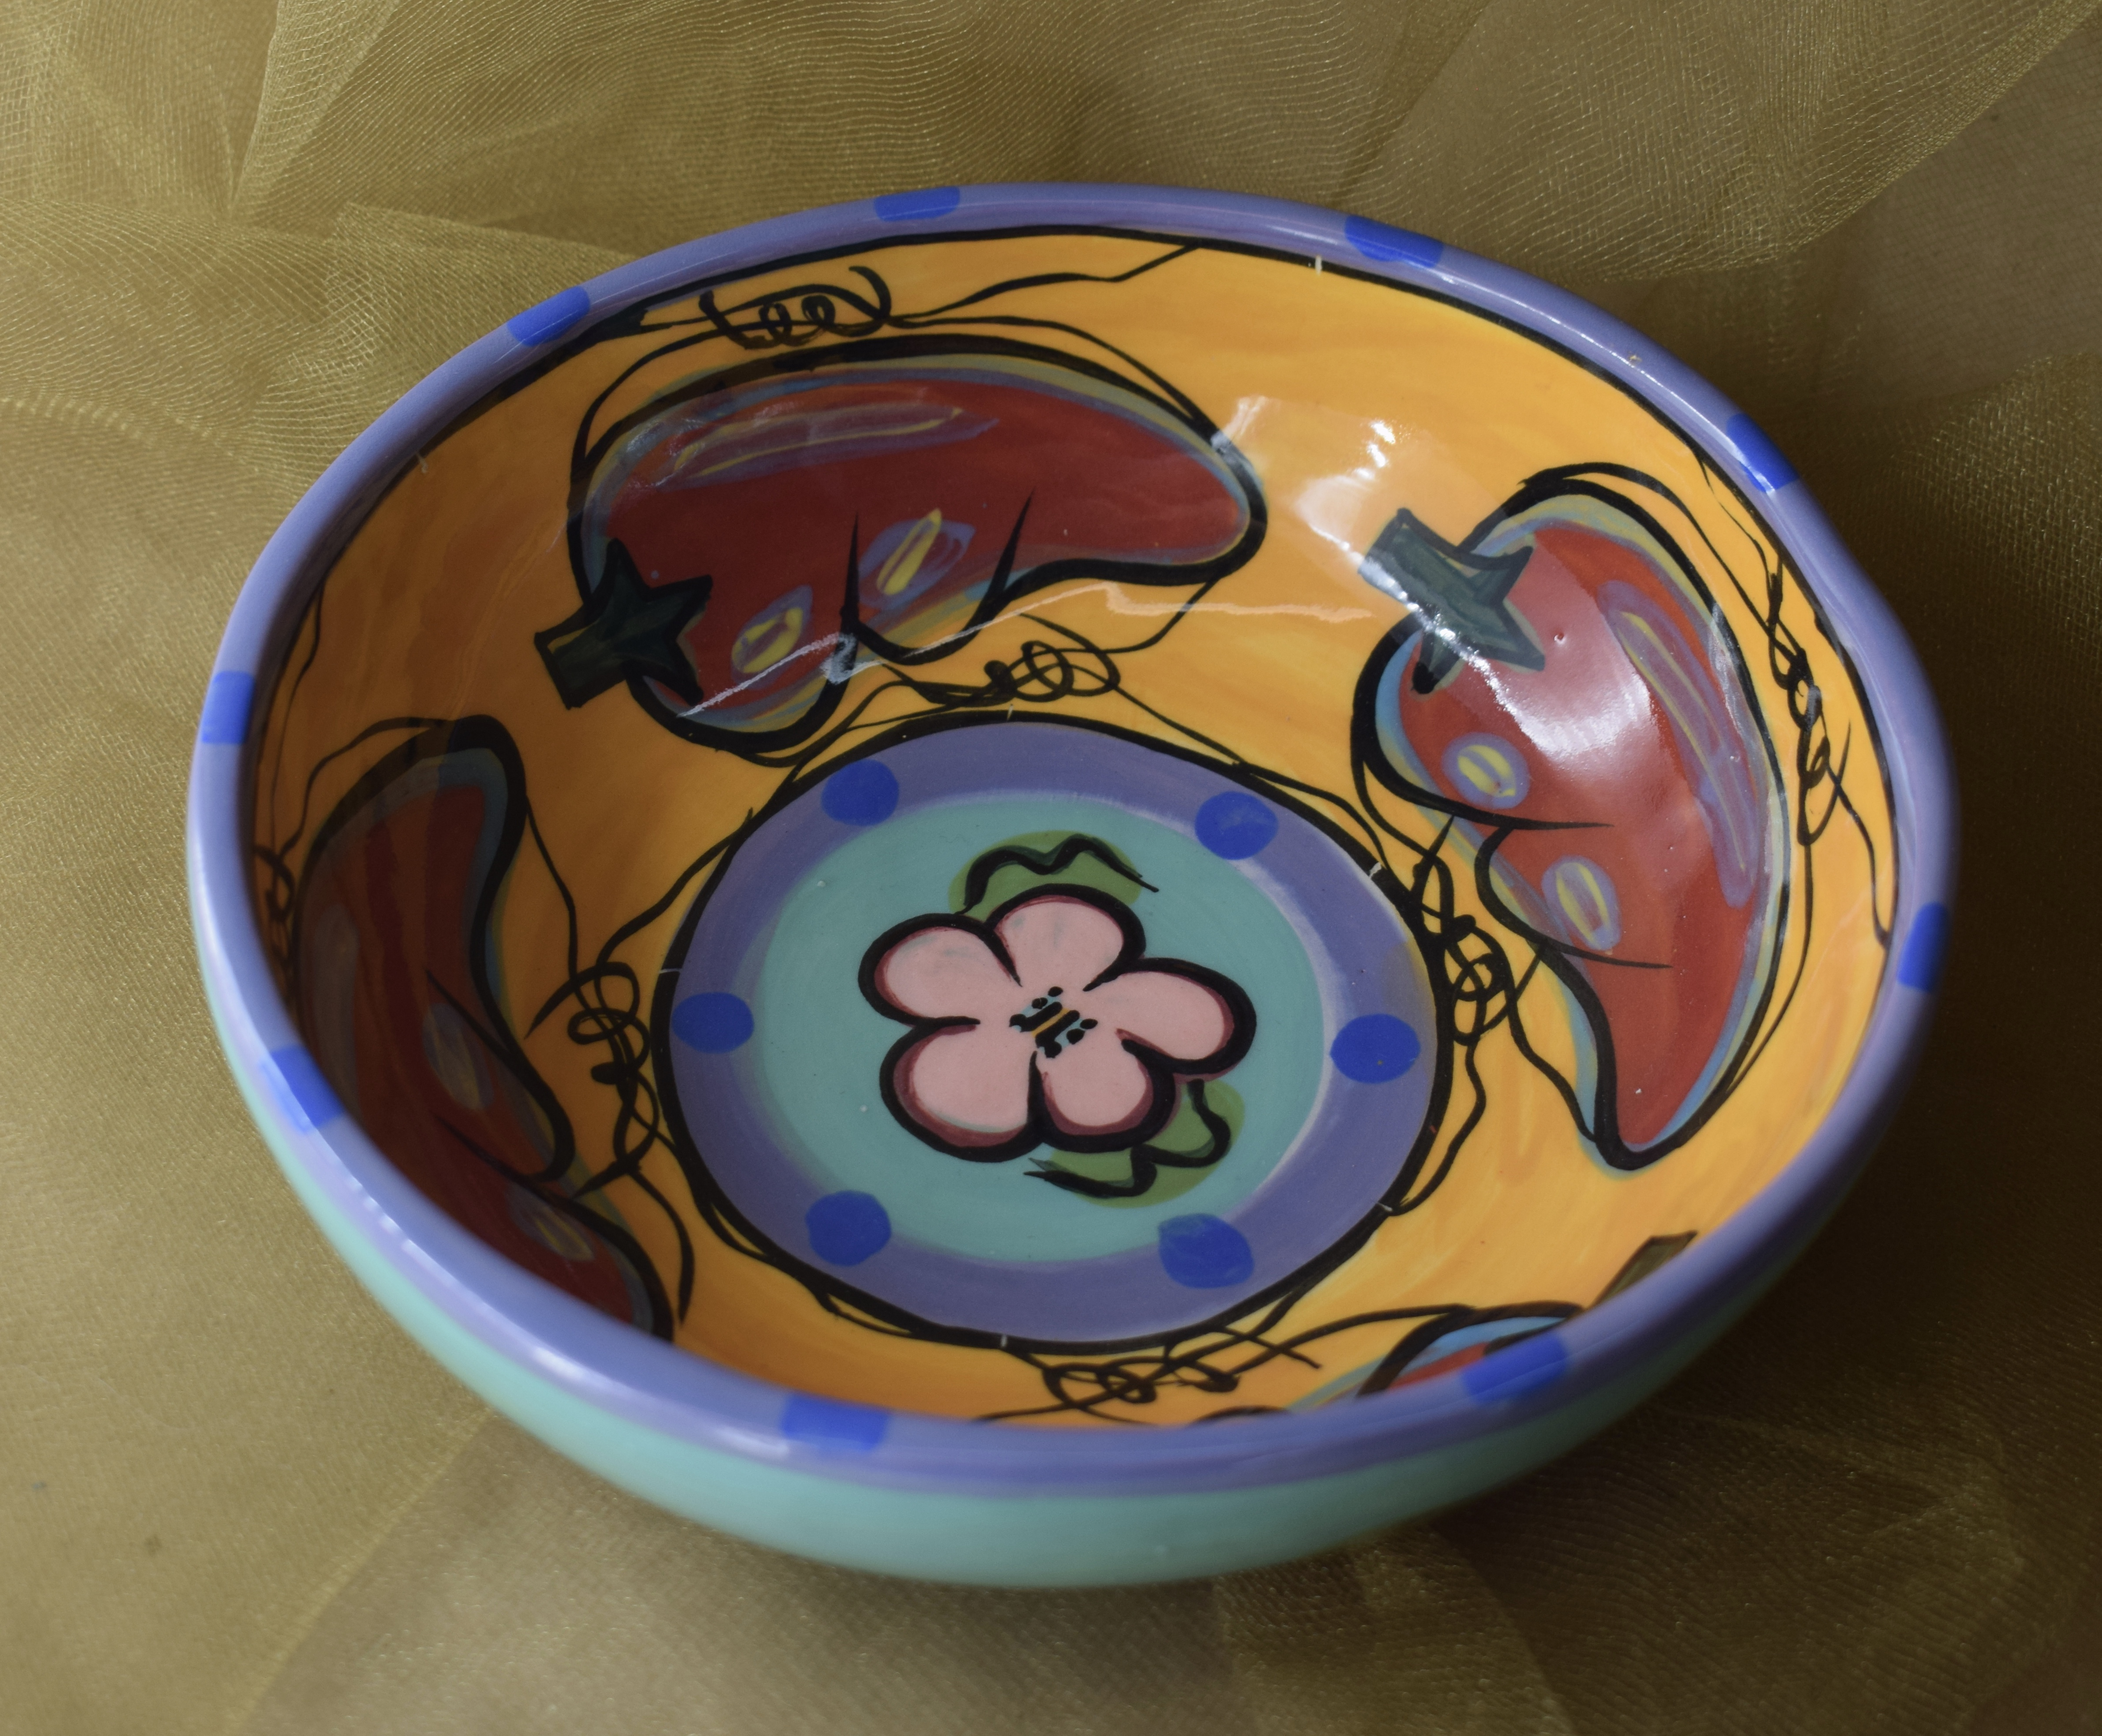 "(CB11-CP)7"" Cereal Bowl - Chile Pachanga"